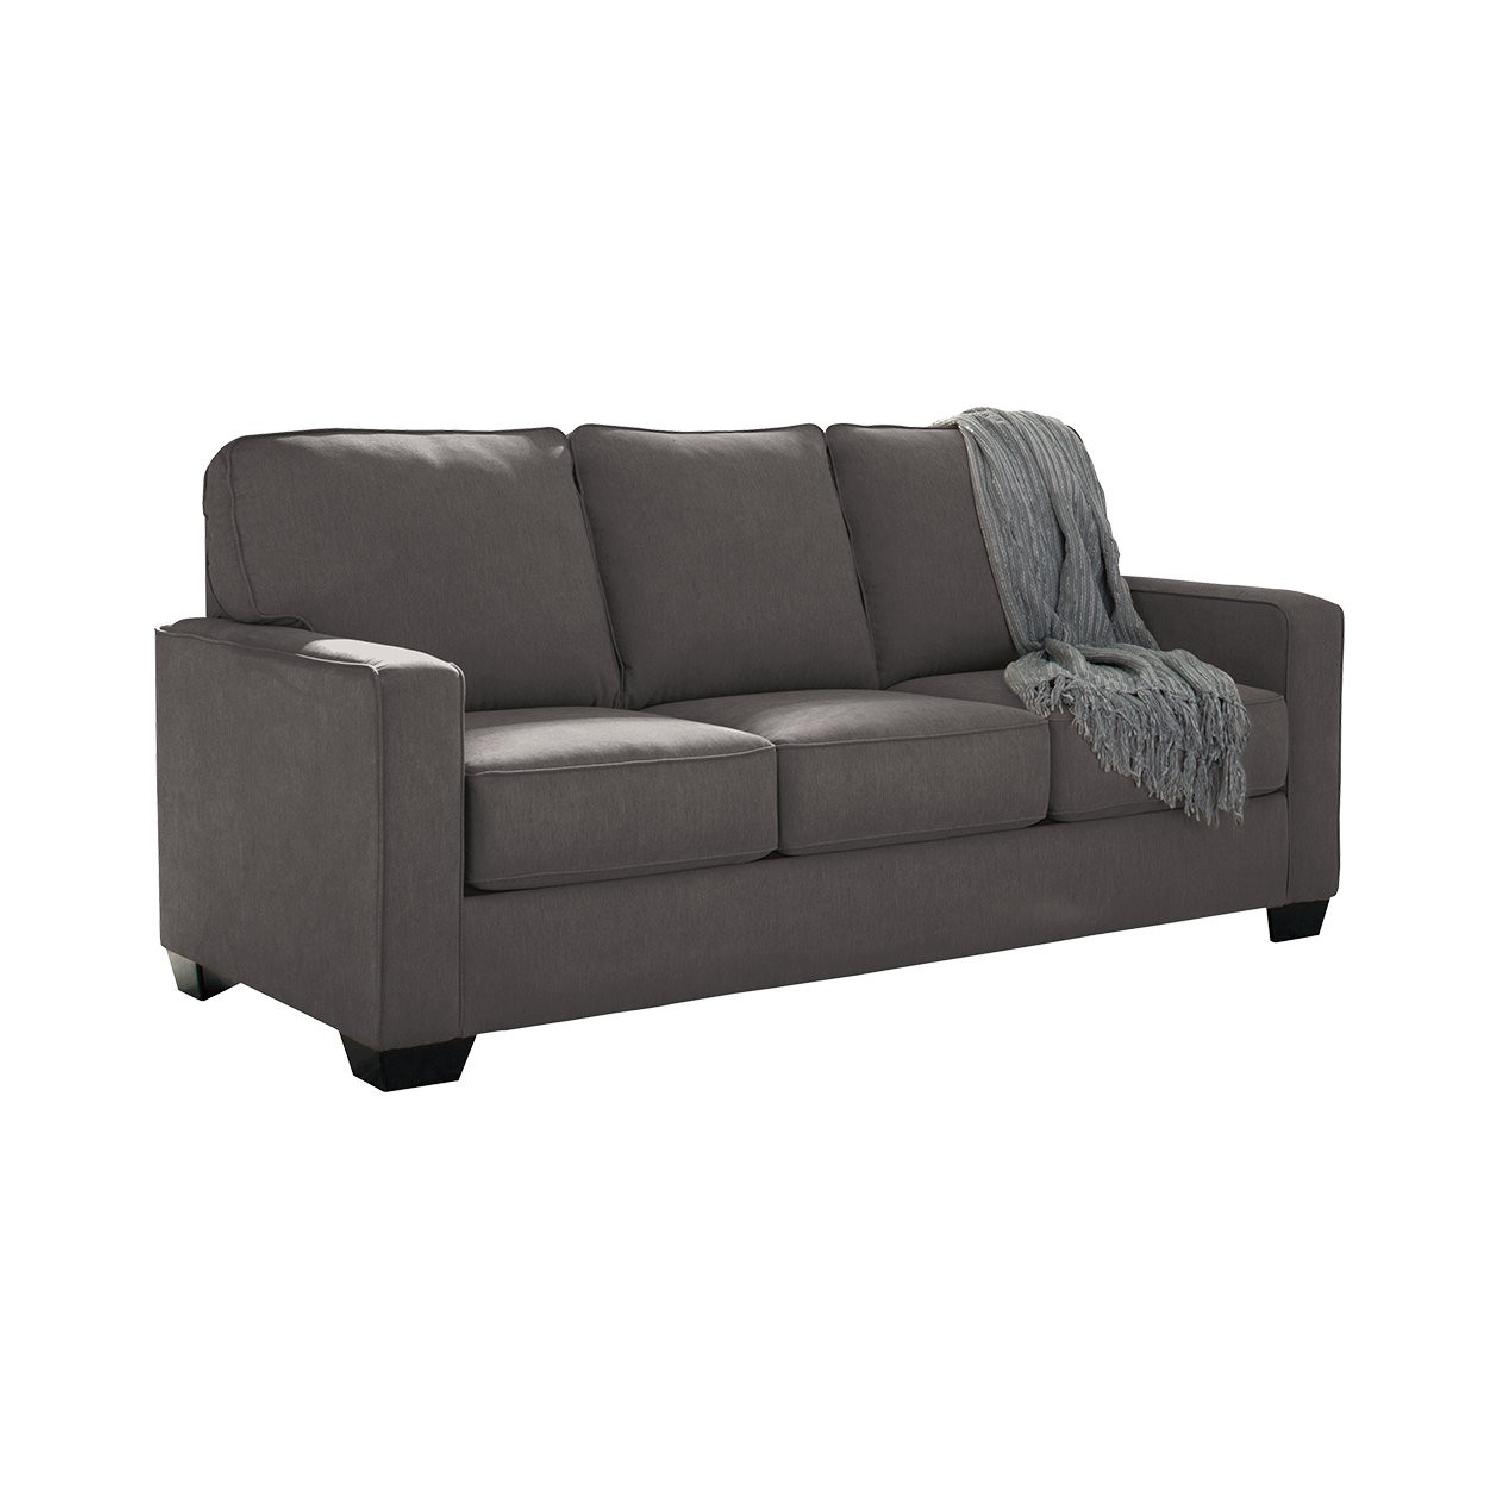 Ashley Furniture Zeb Charcoal Full Sleeper Sofa ...